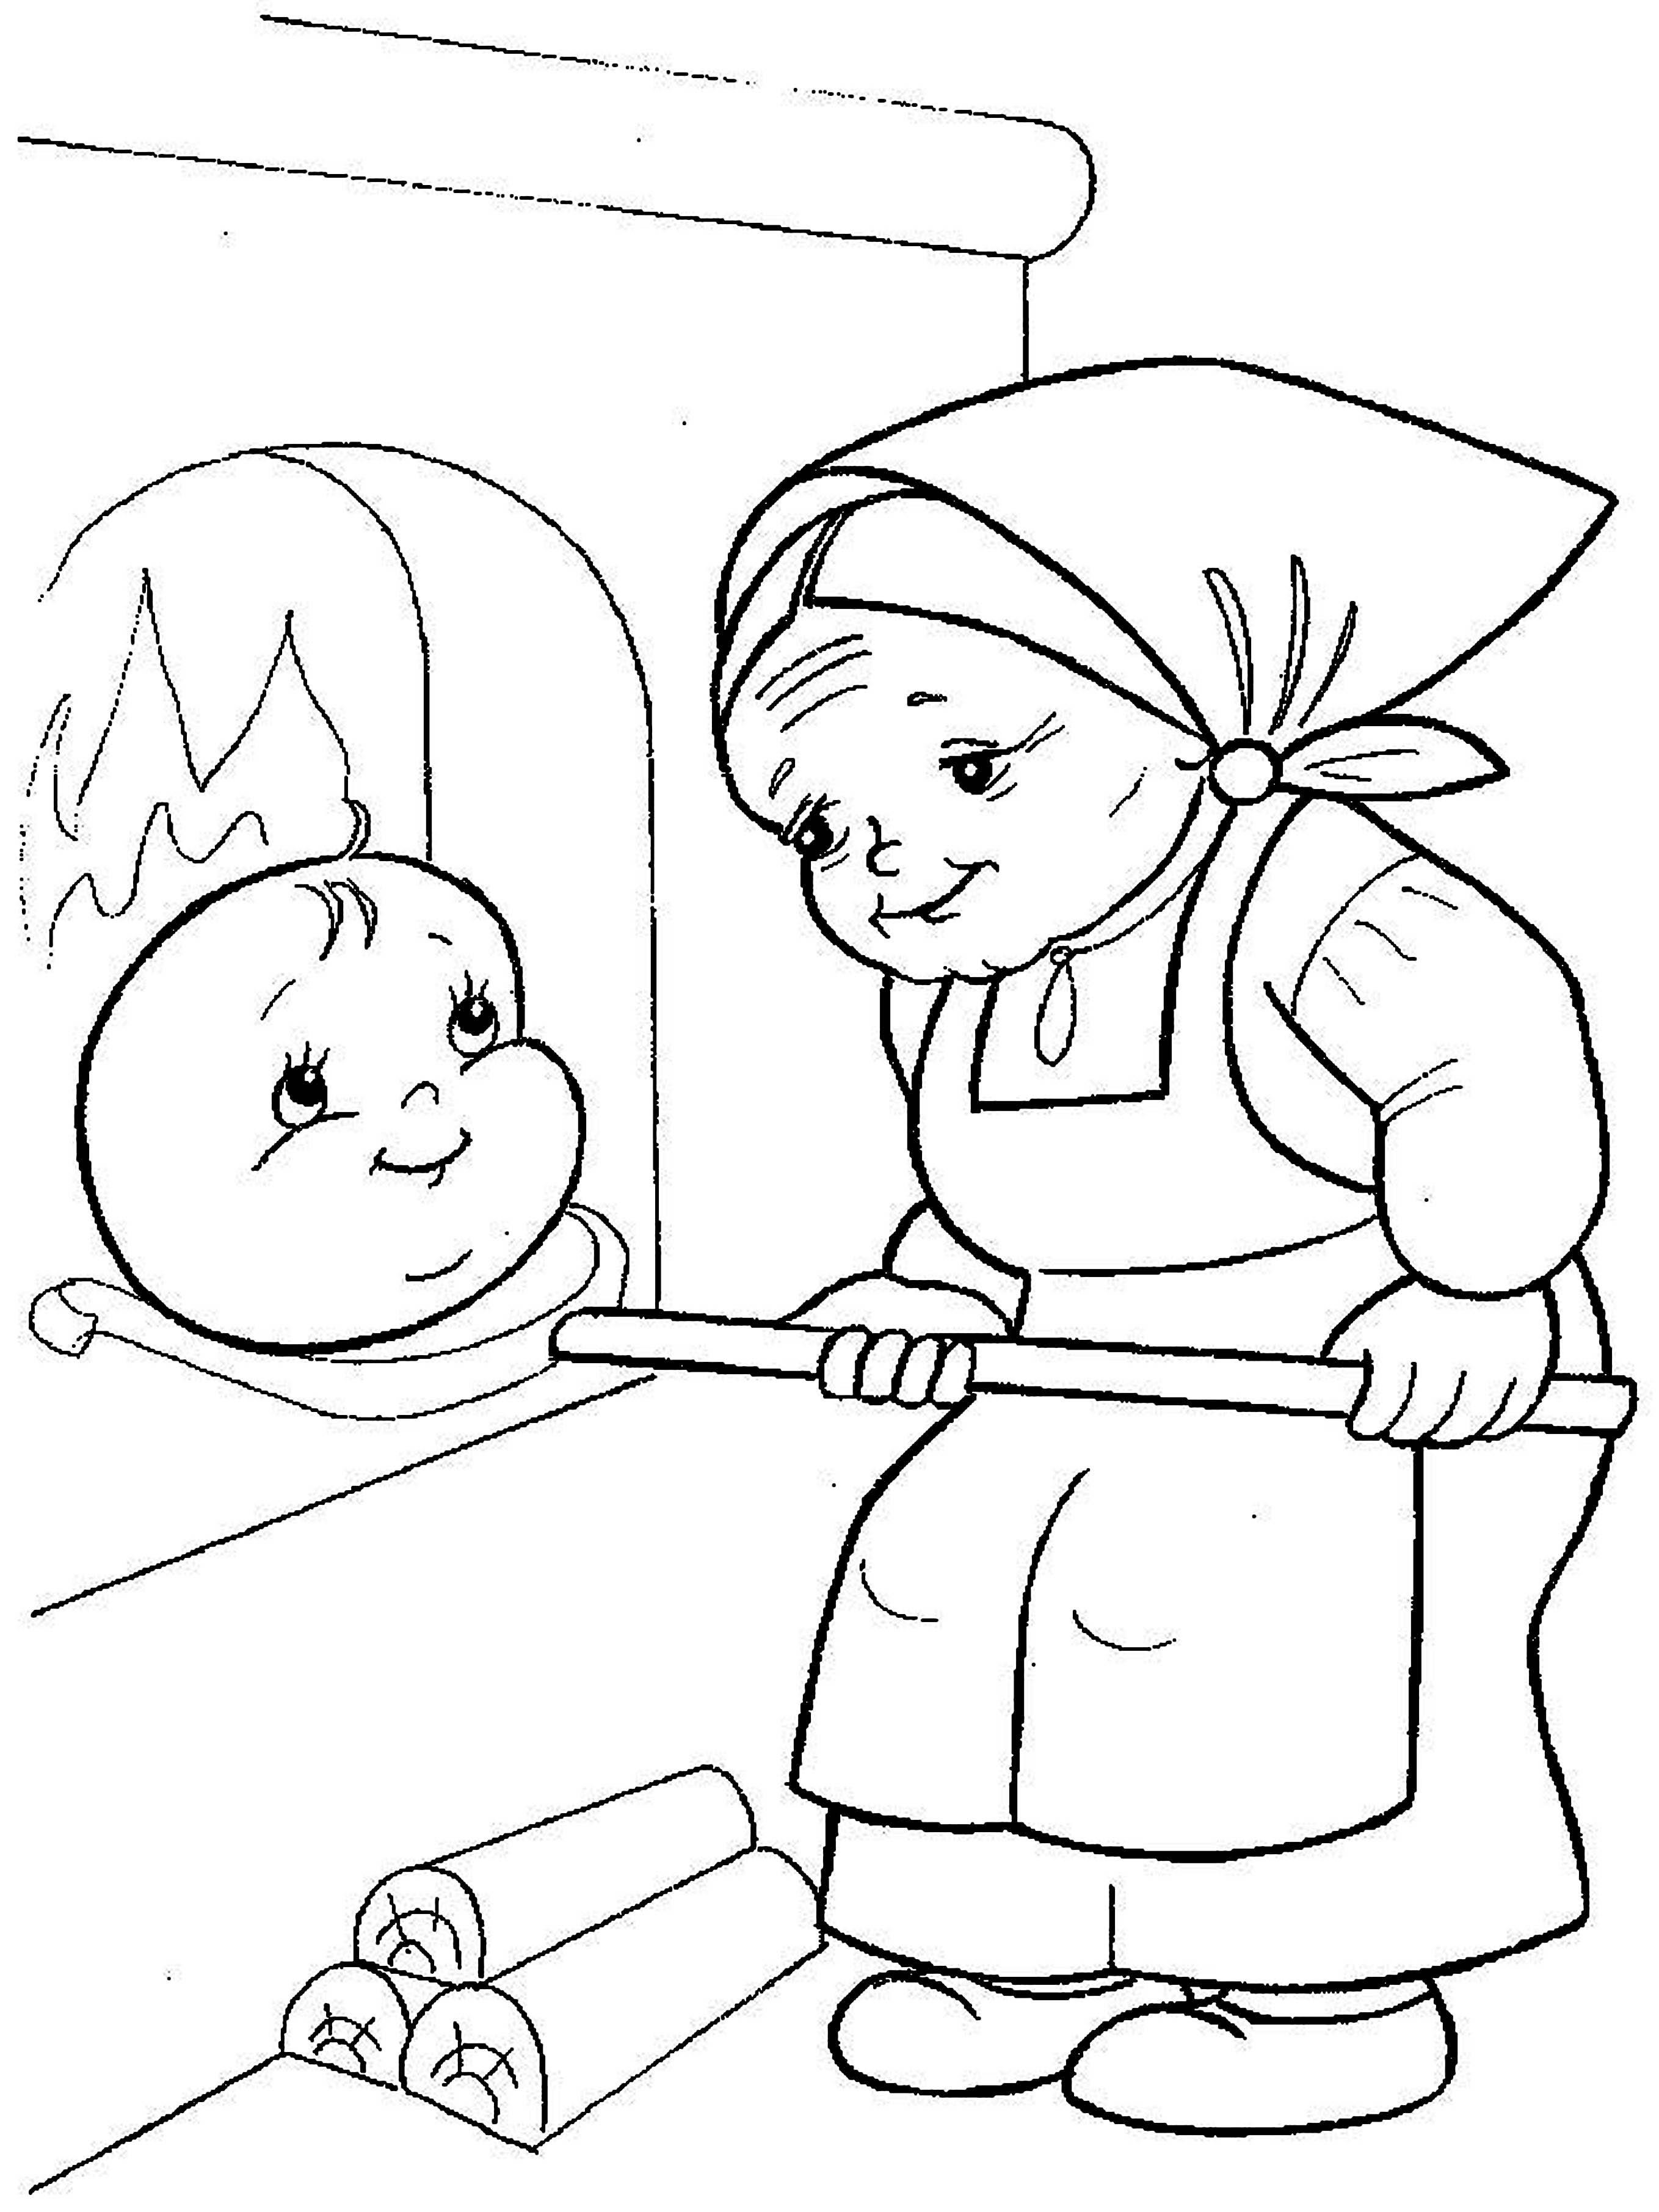 Coloring coloring pages to the tale bun Baursachok, bun, grandmother, bun grandmother, grandmother koloboks